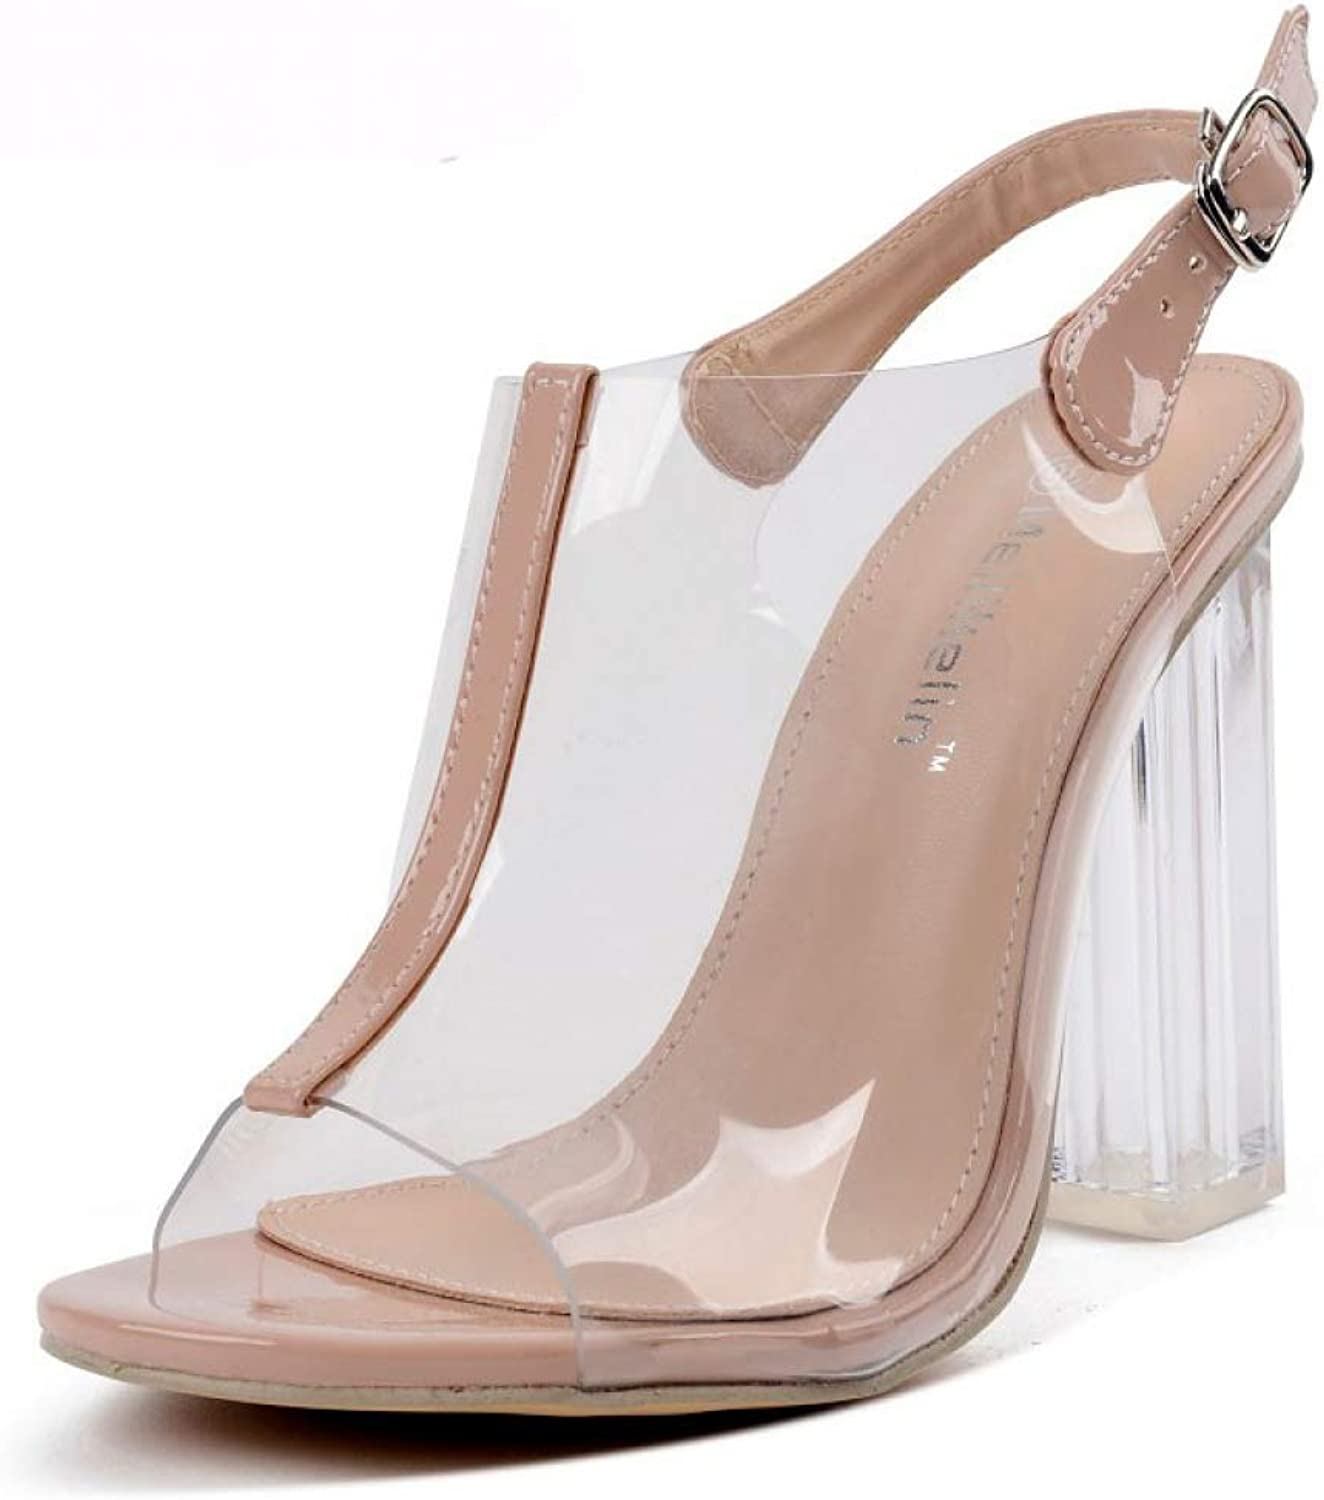 T-JULY Sandal for Women Transparent Peep Toe Thick High Heel Summer Ladies Crystal Clear Strap Sexy Party shoes